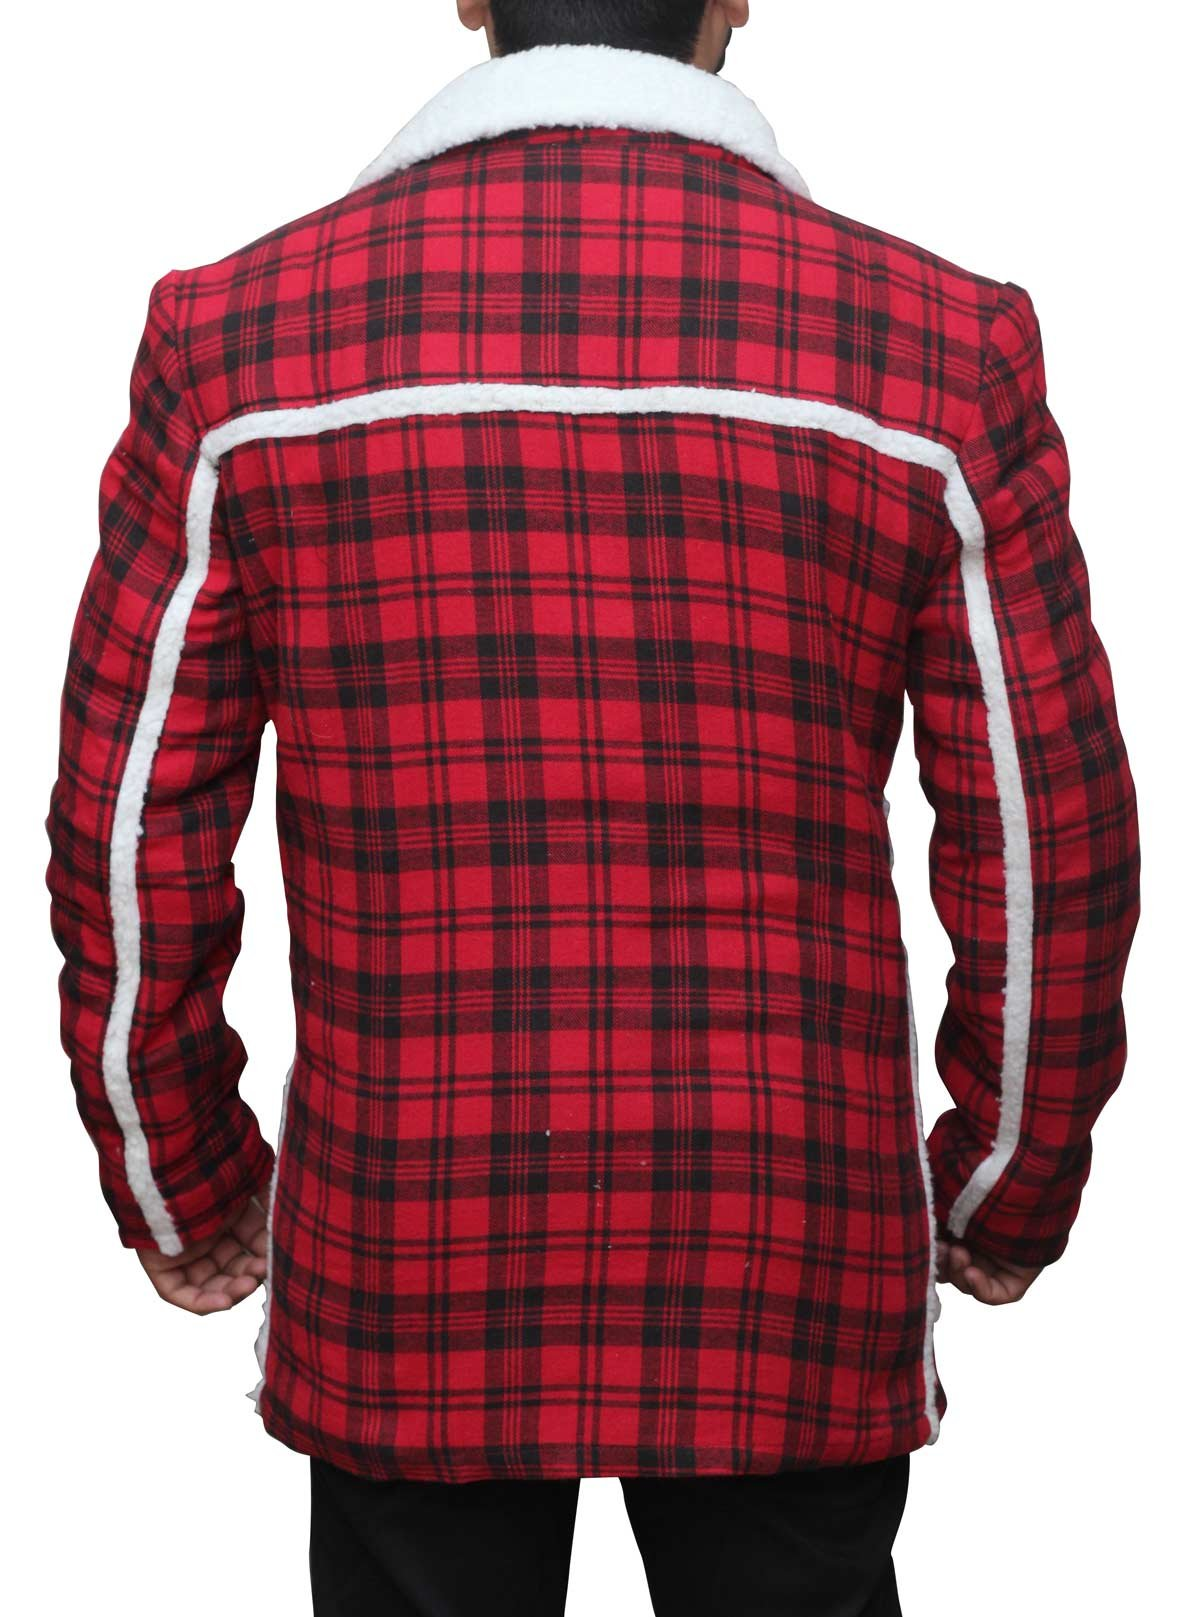 Deadpool Ryan Reynolds Red cotton flannel Shearling Jacket 3XL by fjackets (Image #4)